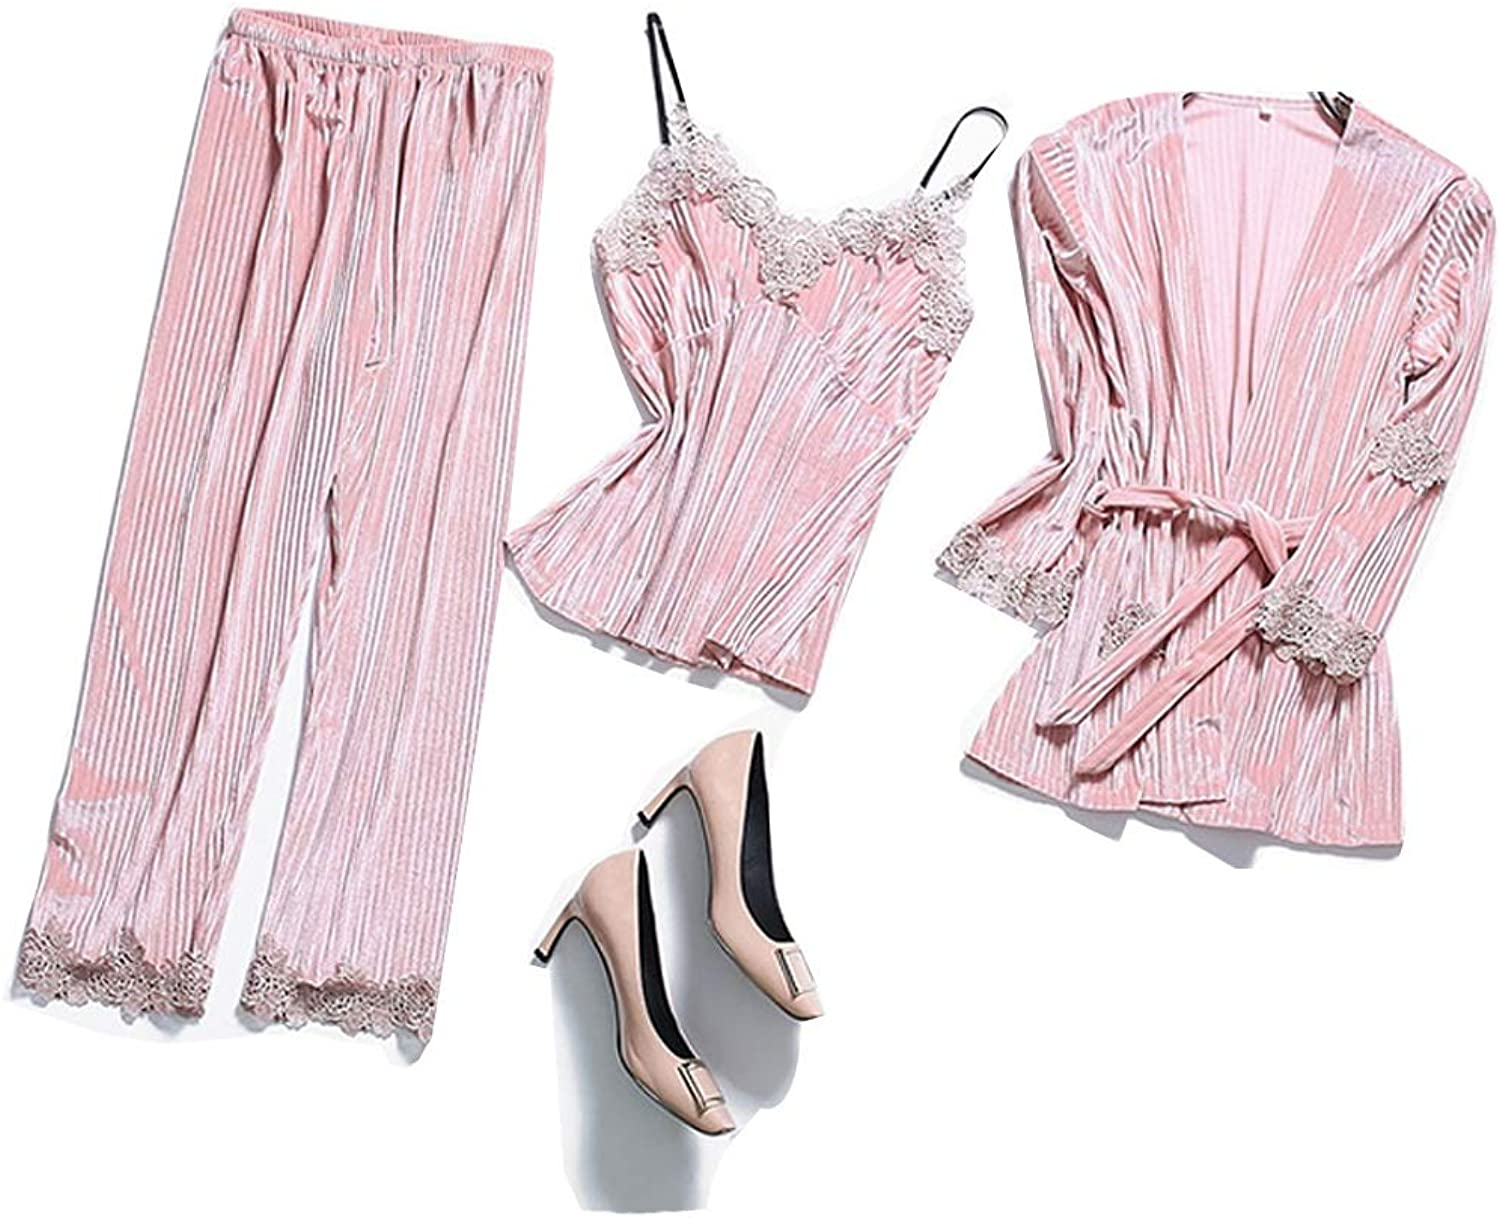 GJFeng Spring and Autumn Winter Women's gold Velvet Pajamas Lace Stretch Casual ThreePiece Set Elegant Atmosphere Home Wear Soft and Comfortable (color   Pink, Size   XL)